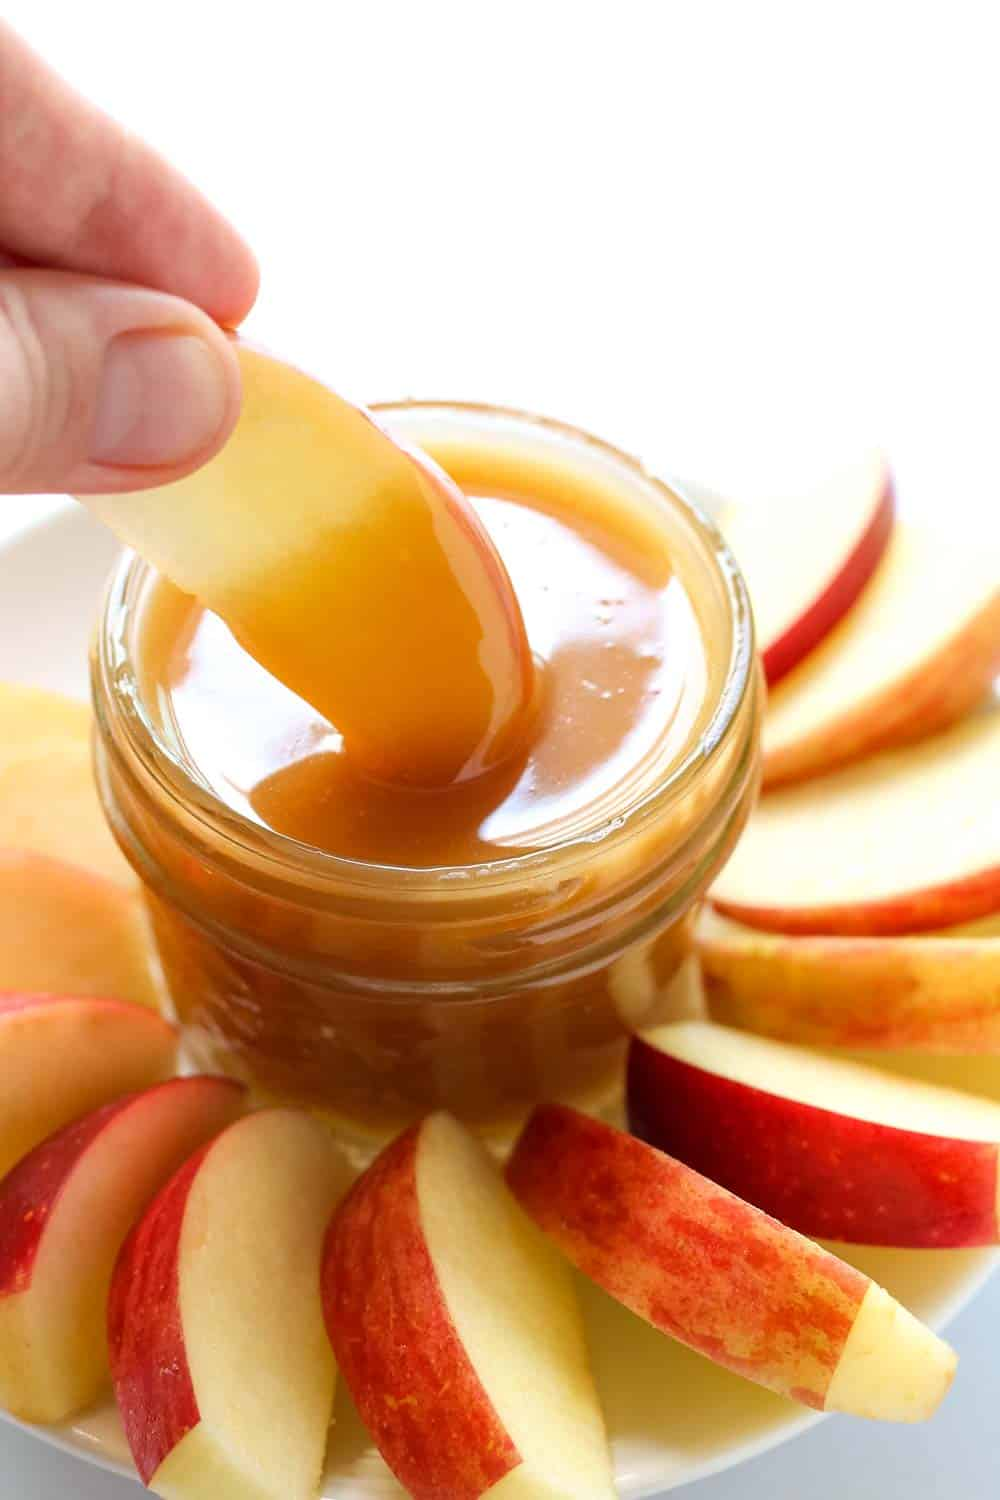 Dipping Apples in Caramel